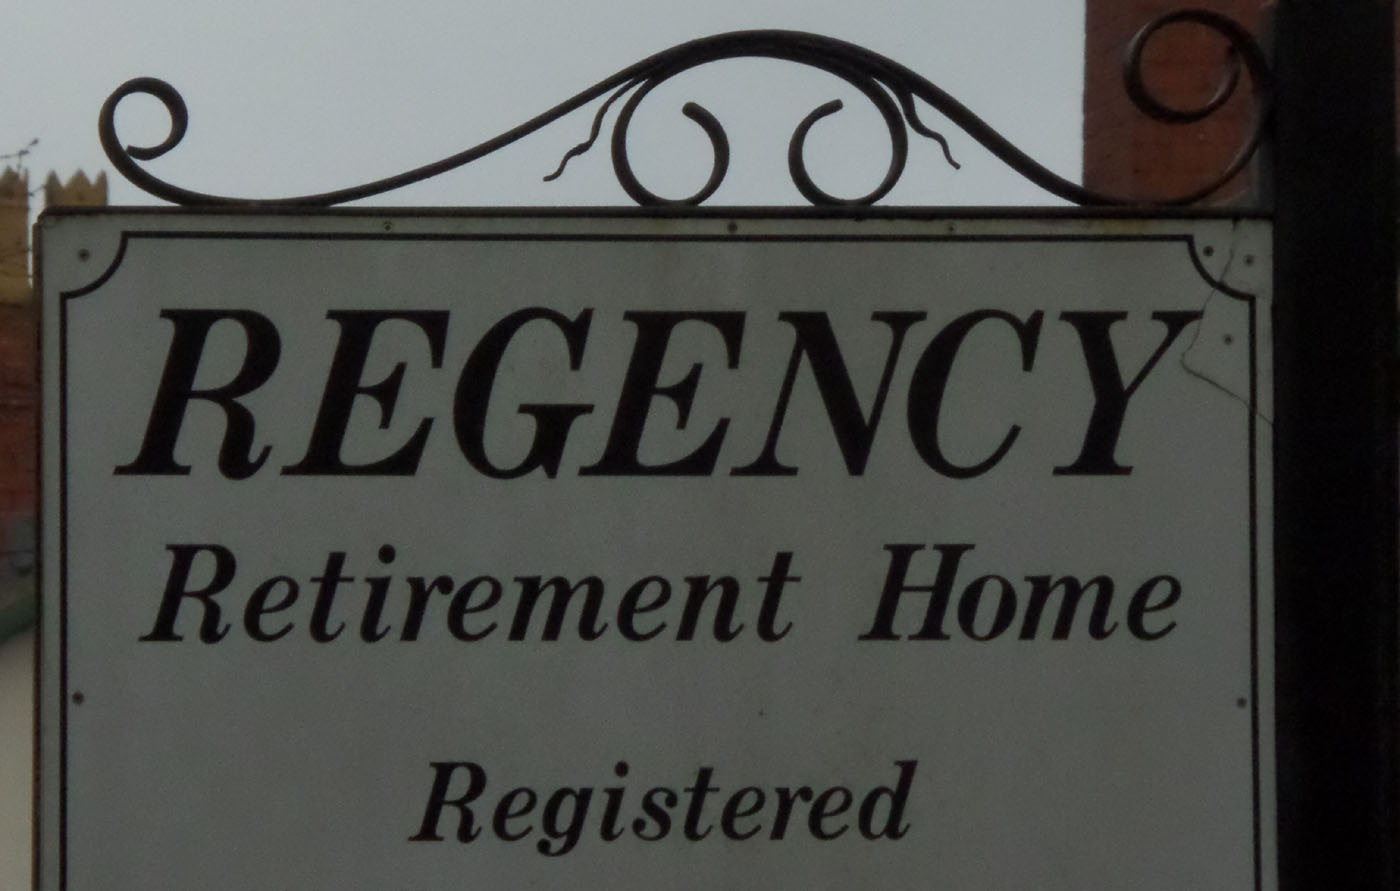 Regency House